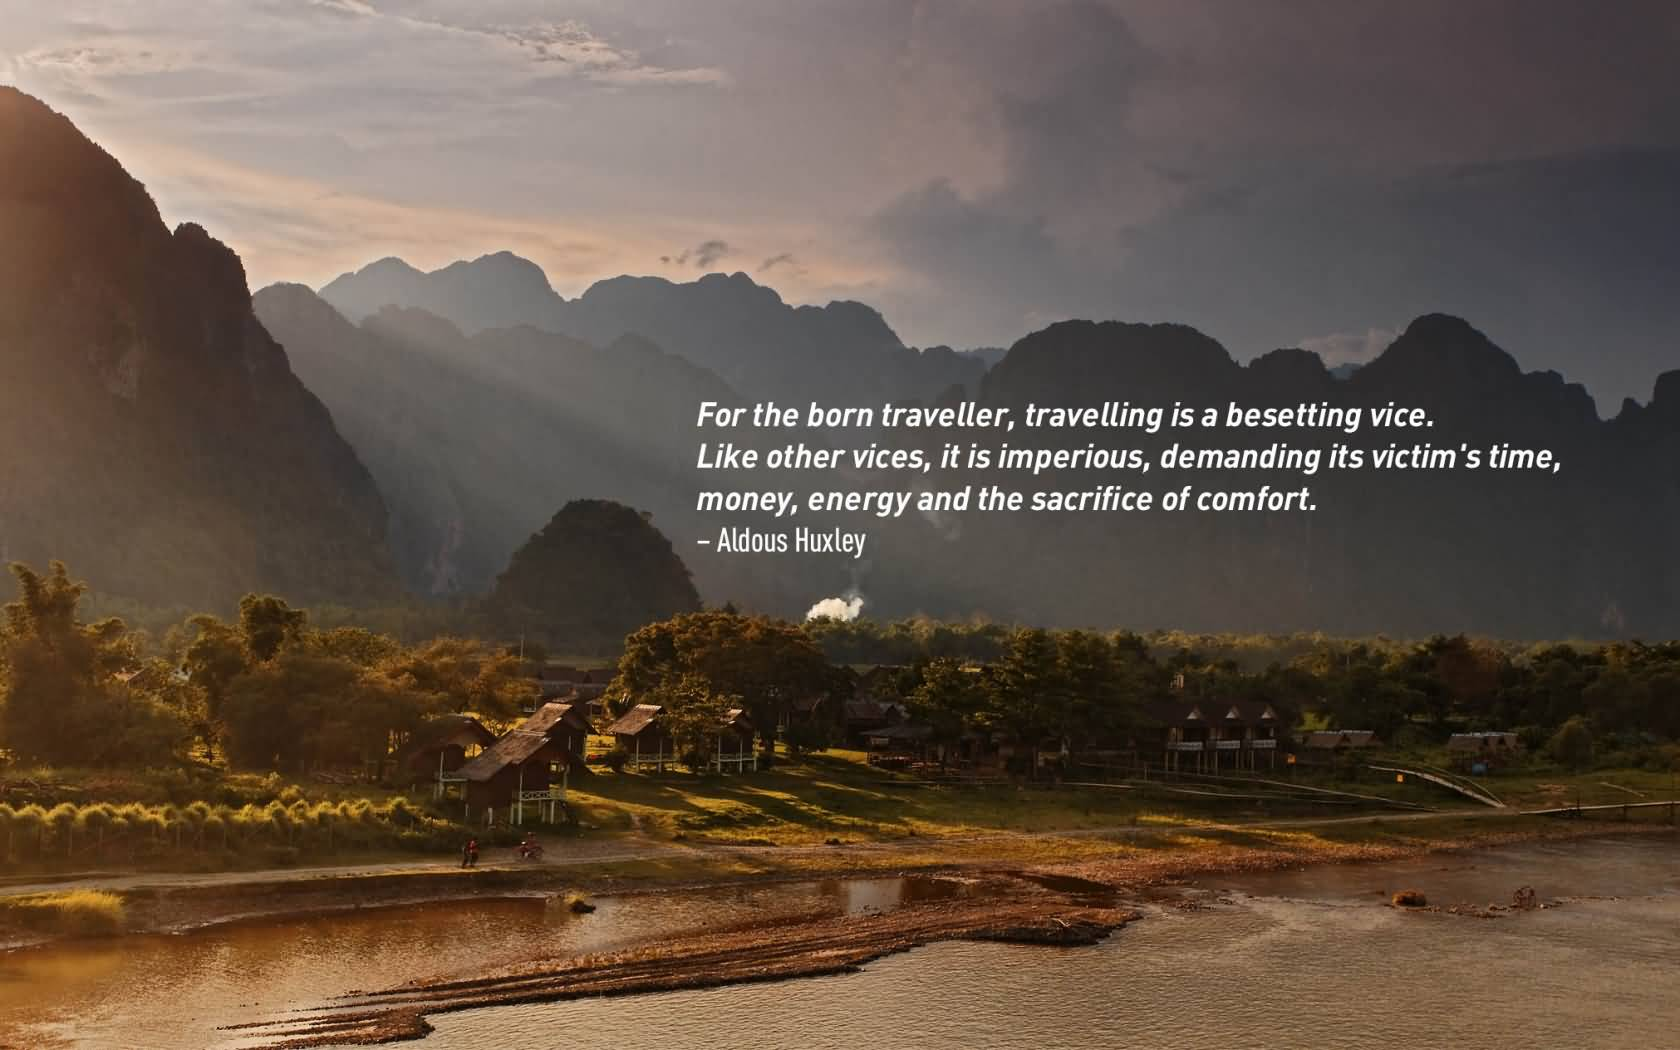 Travel Quotes for the born traveler, travelling is a besetting vice...